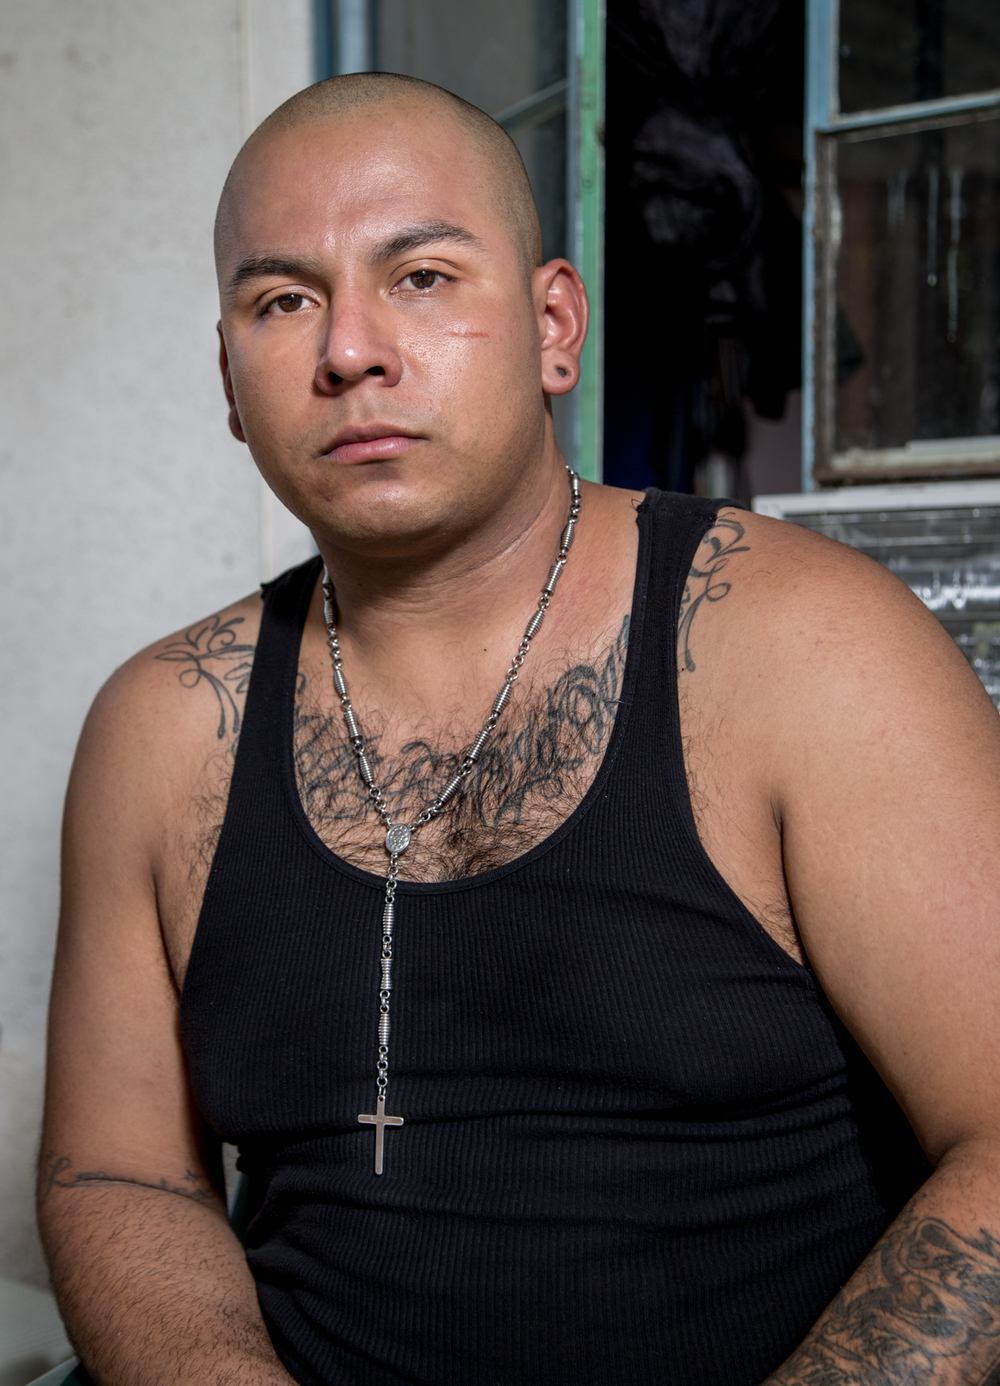 Arturo a.k.a. Junior in Riverside, Calif.